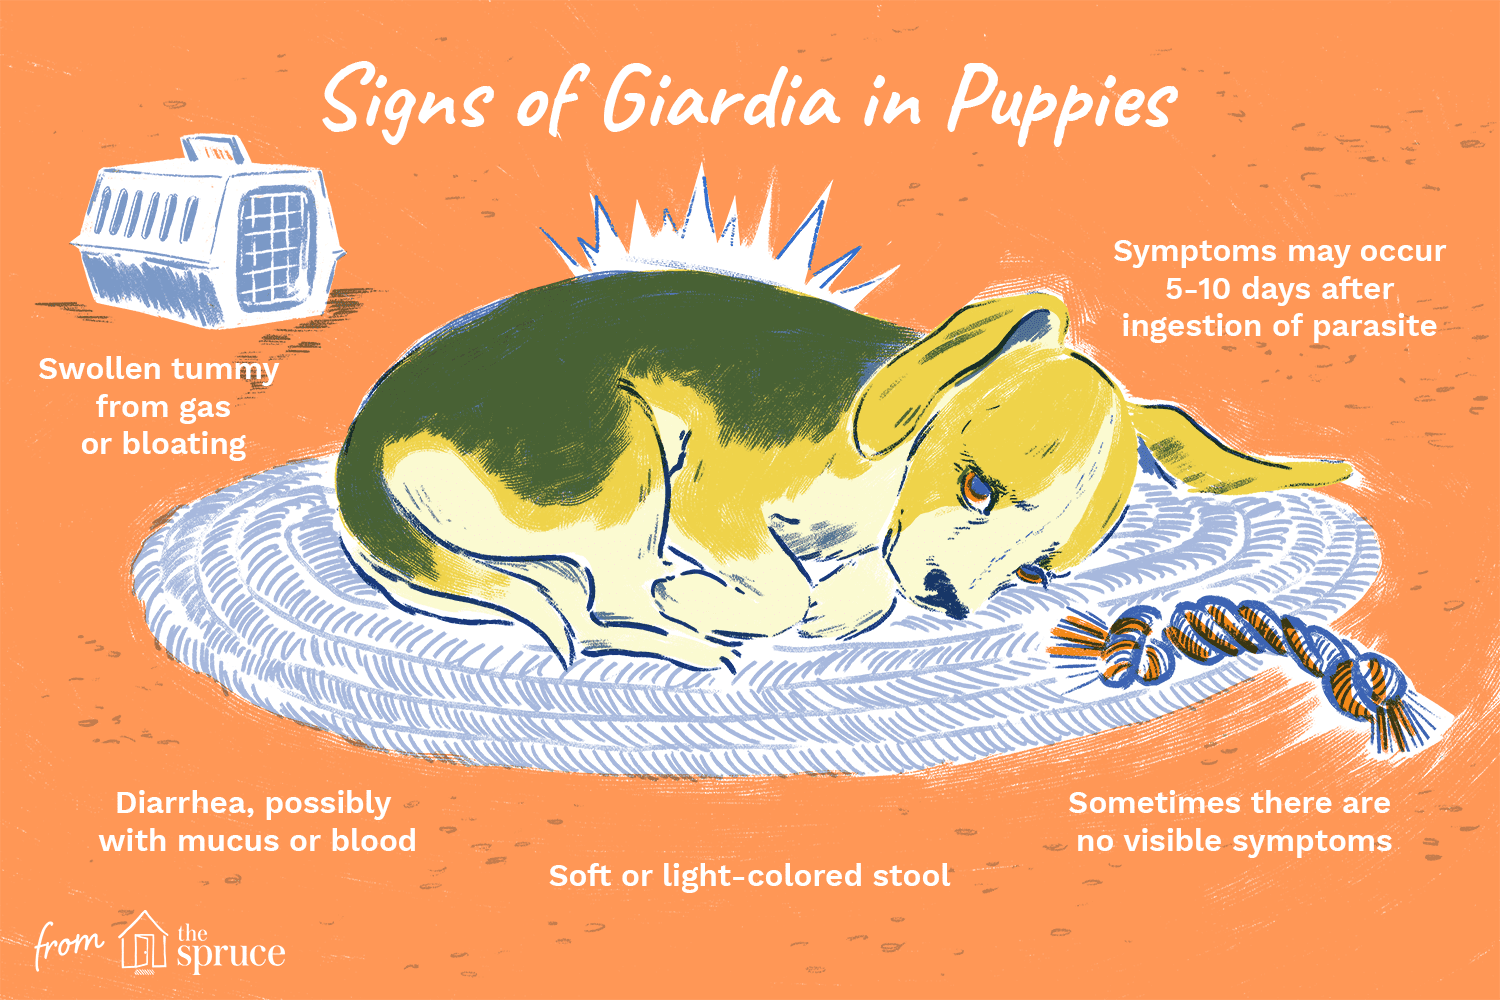 Pasozyt giardia u psa - Giardia in puppies